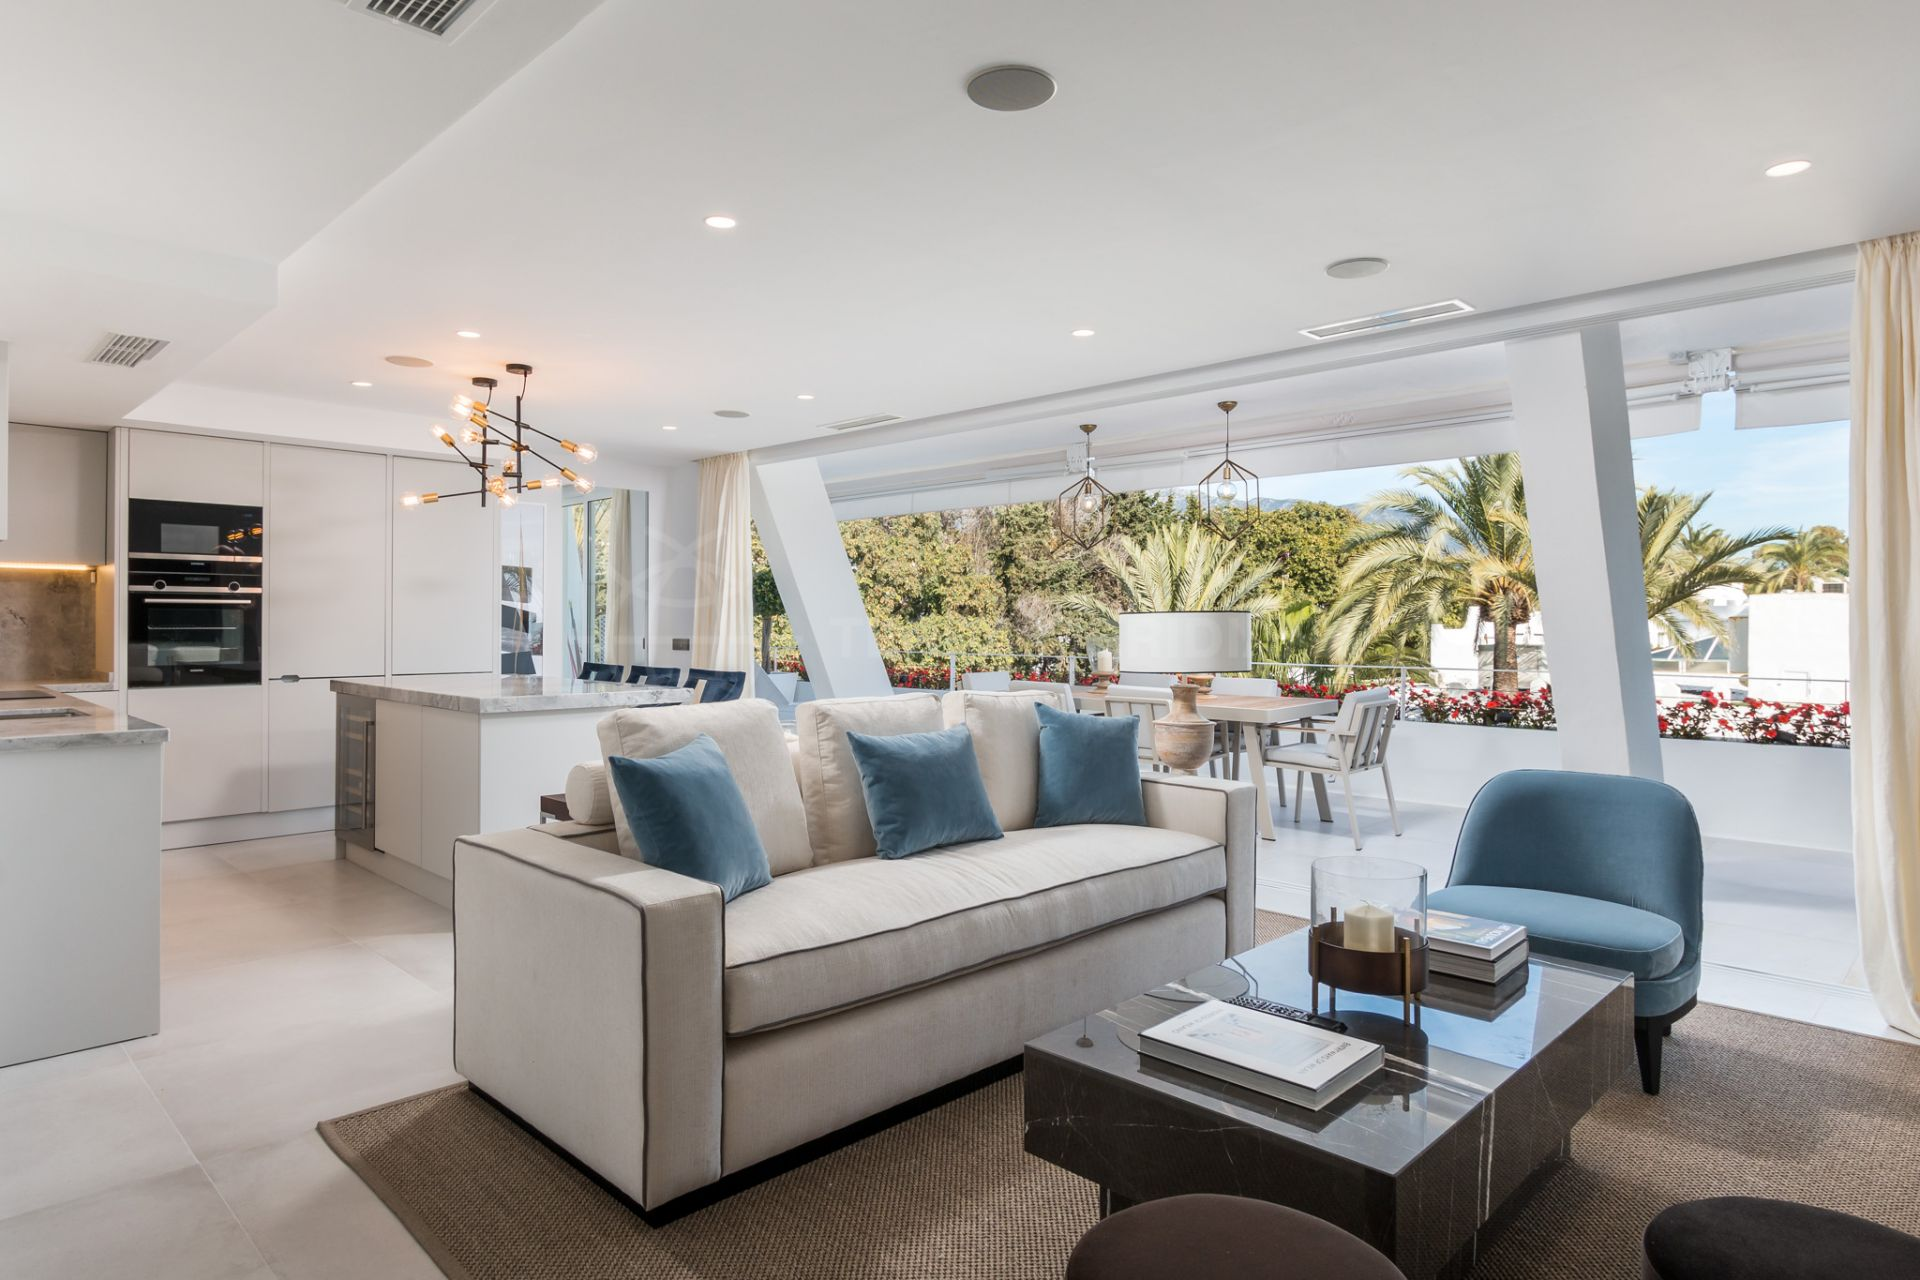 13af63e91c141 Exquisite apartment with postcard-perfect beach and sea views for sale in  the seafront development of Port Oasis, Marbella Golden Mile